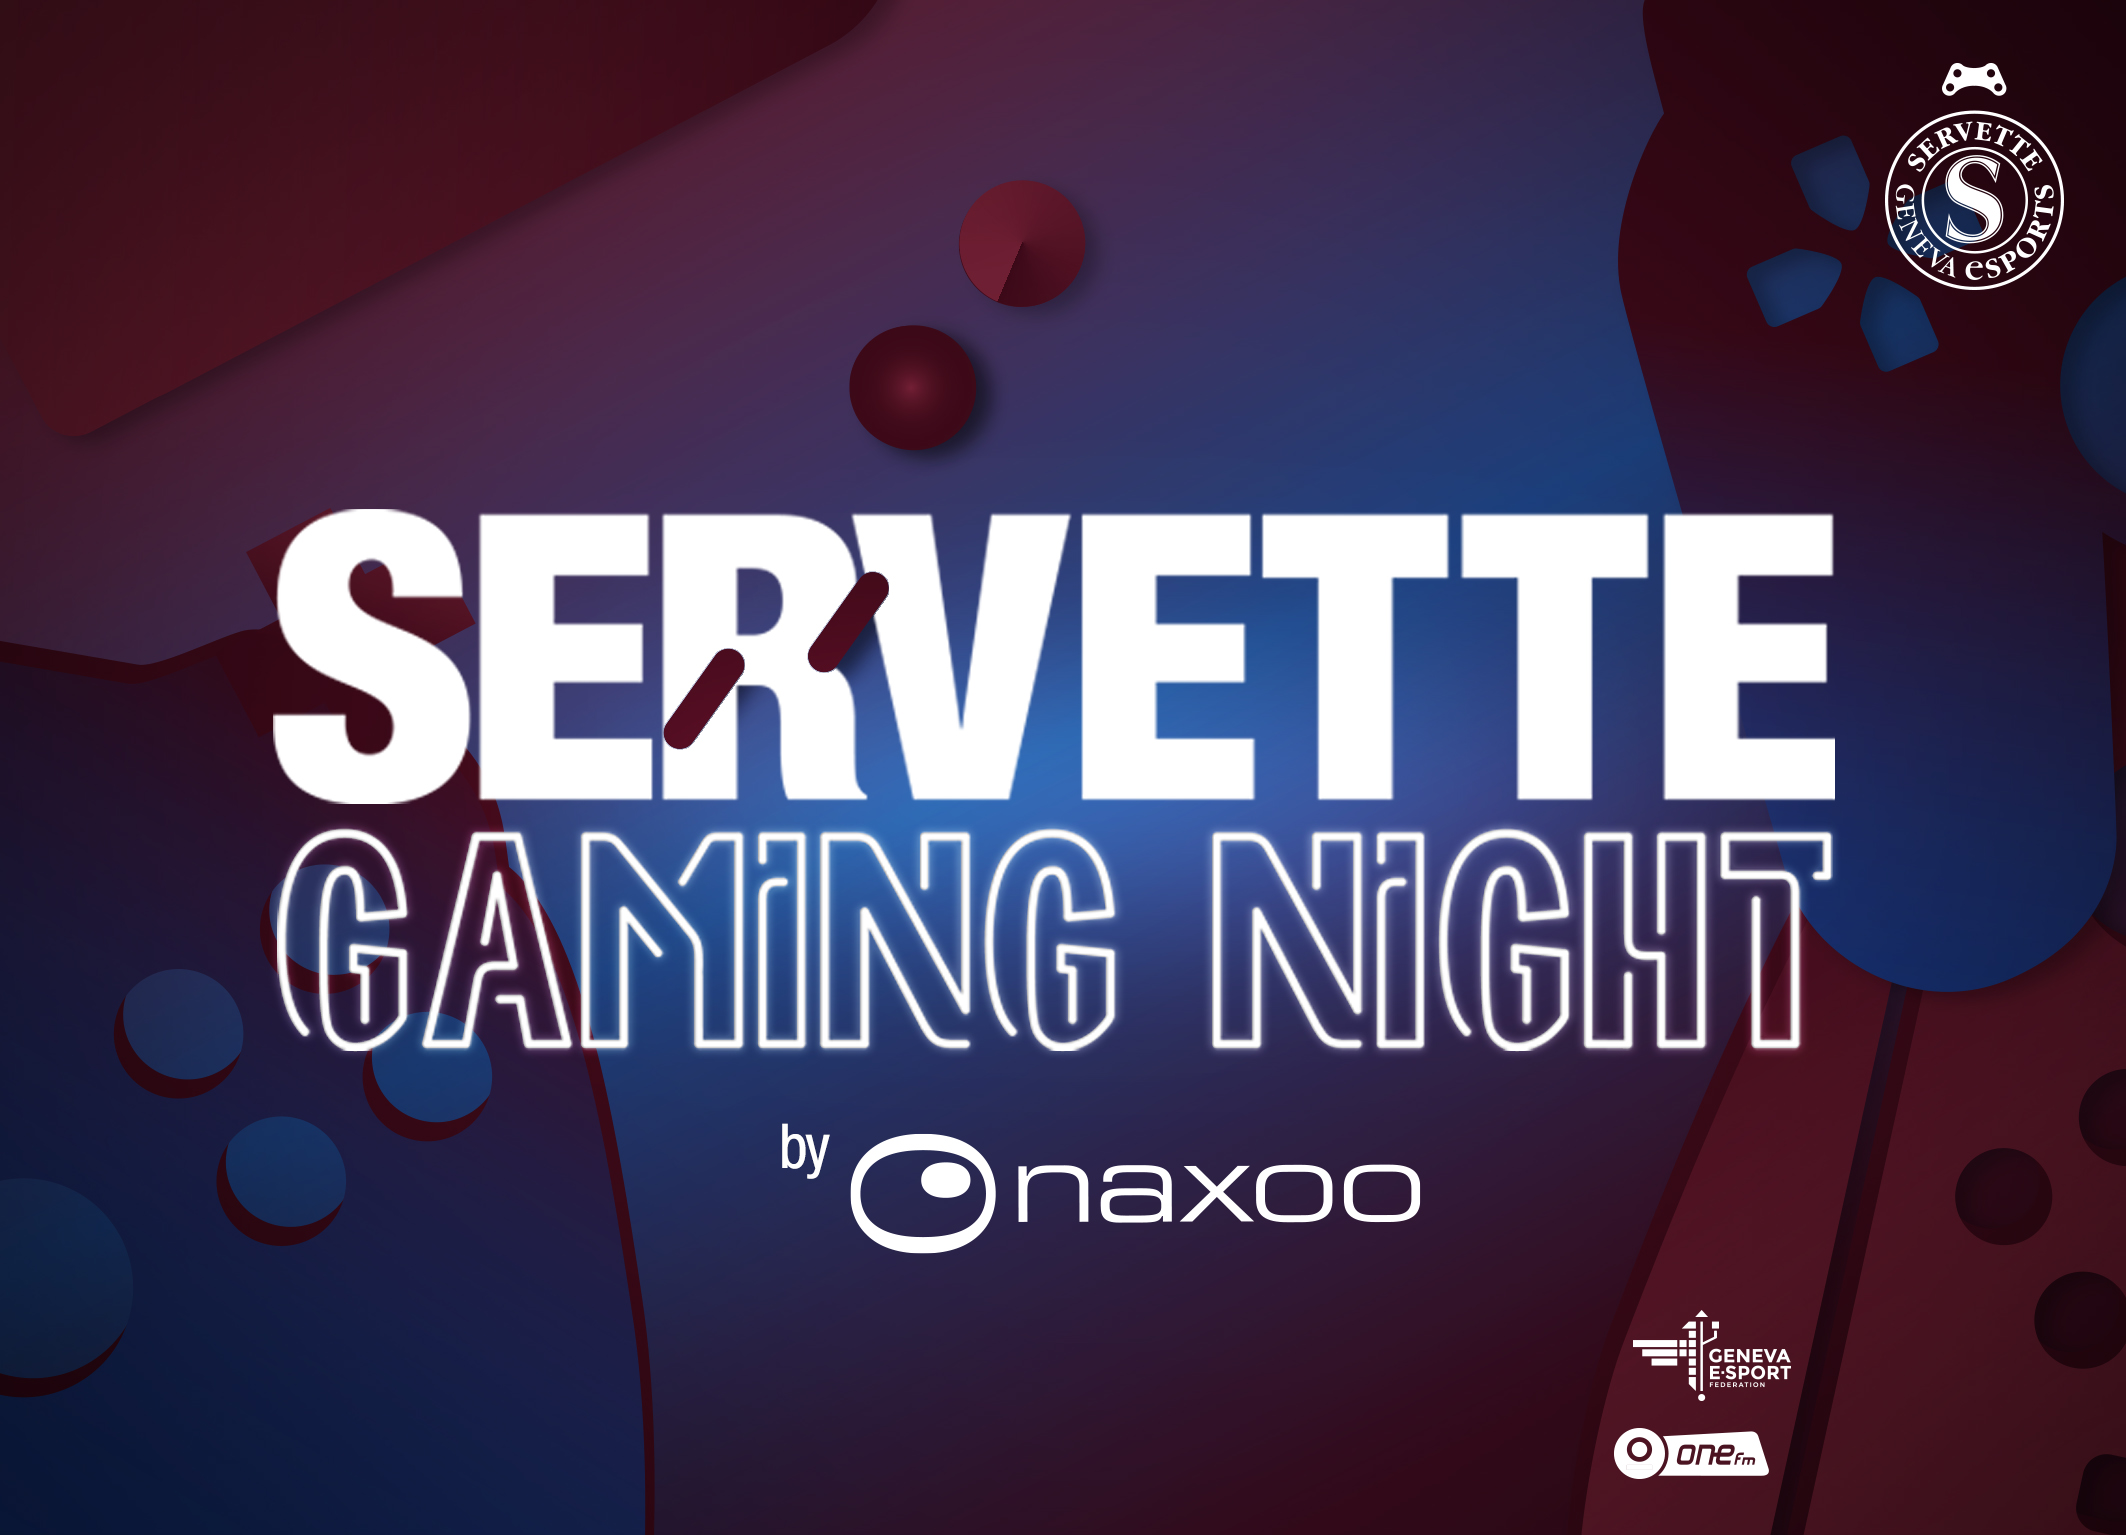 Servette Gaming Night by naxoo